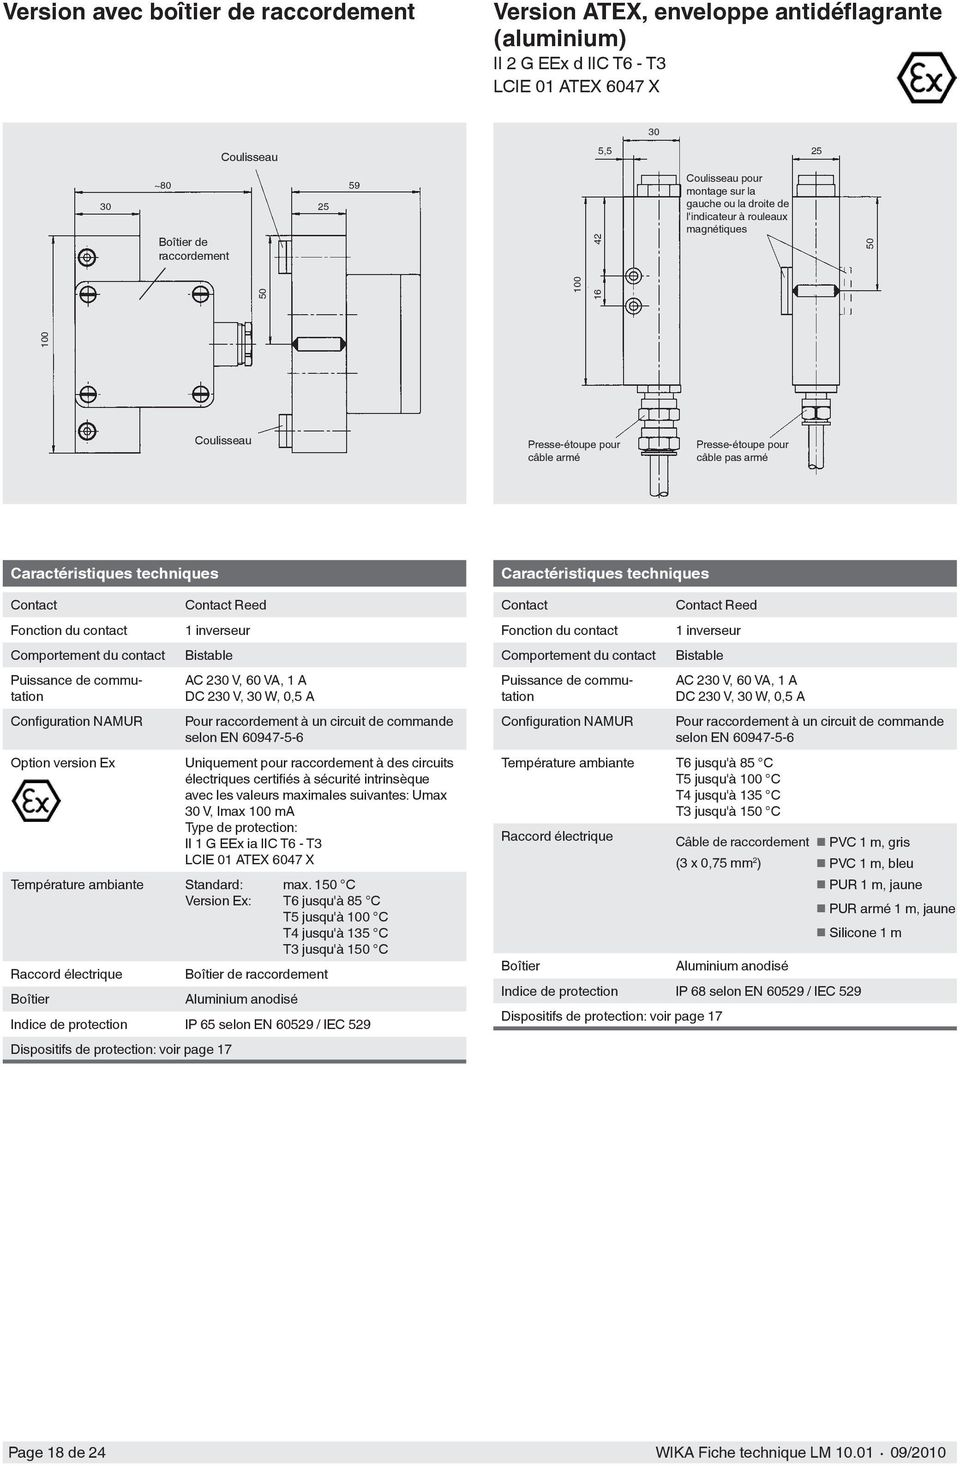 Comportement du contact Puissance de commutation Configuration NAMUR Option version Ex Contact Reed 1 inverseur Bistable AC 230 V, 60 VA, 1 A DC 230 V, 30 W, 0,5 A Pour raccordement à un circuit de